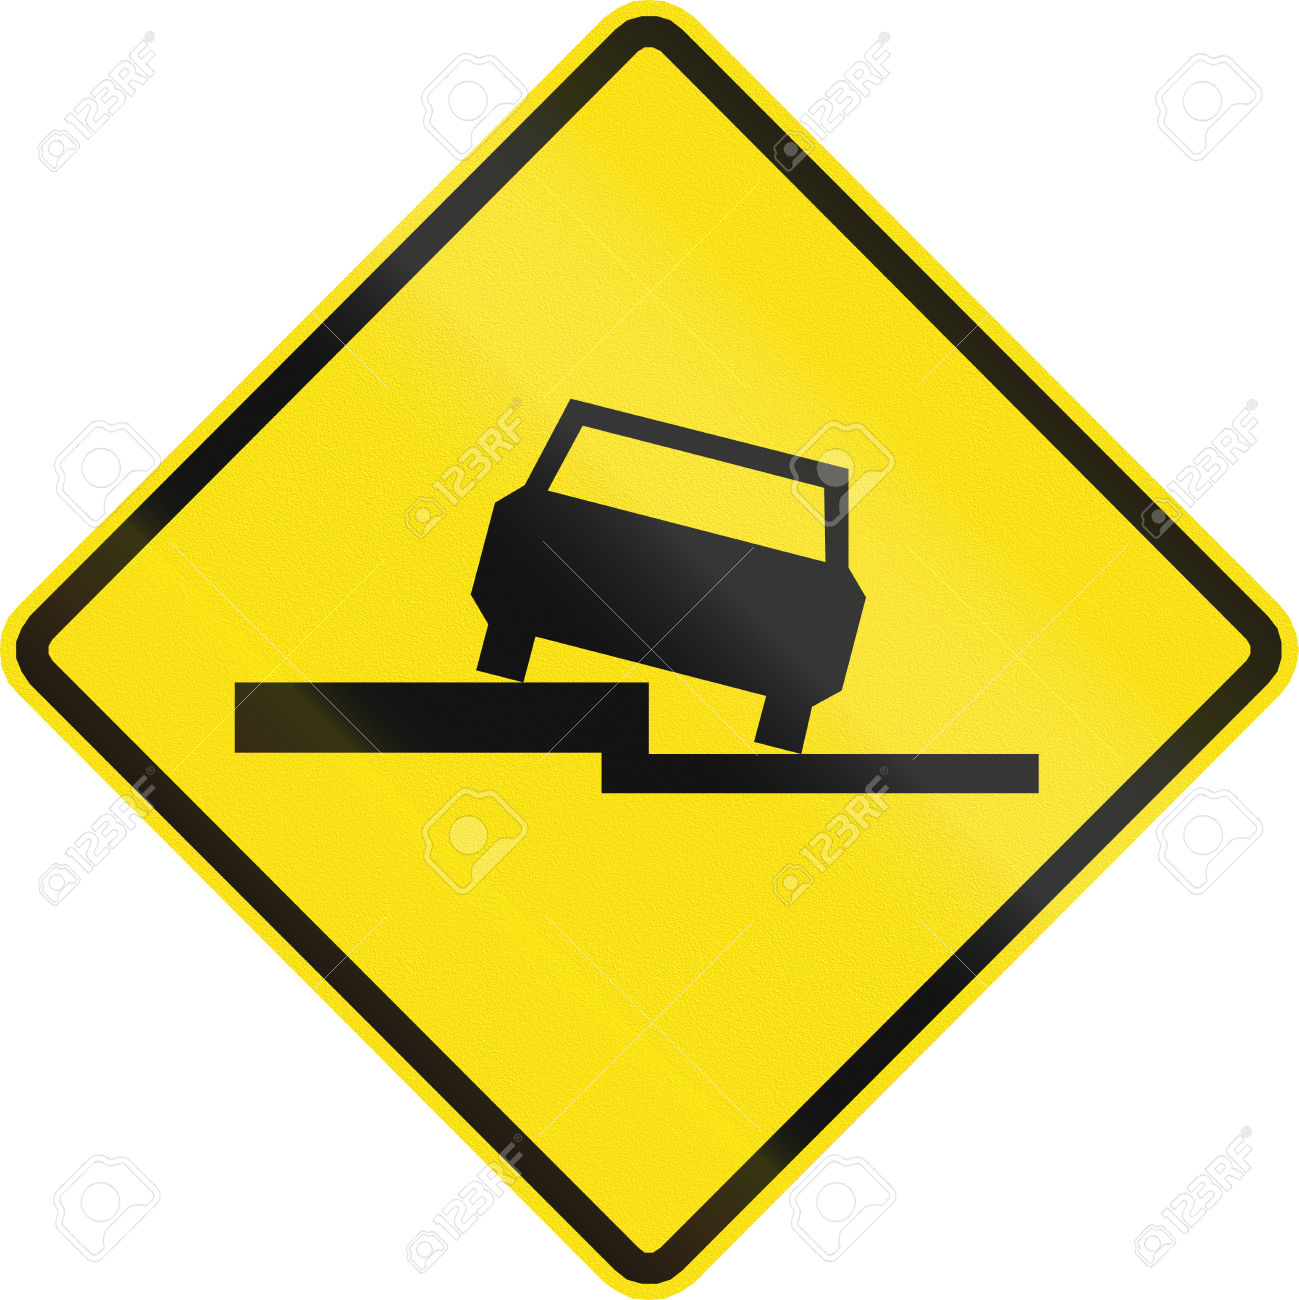 Warning Road Sign In Chile: Uneven Road. Stock Photo, Picture And.